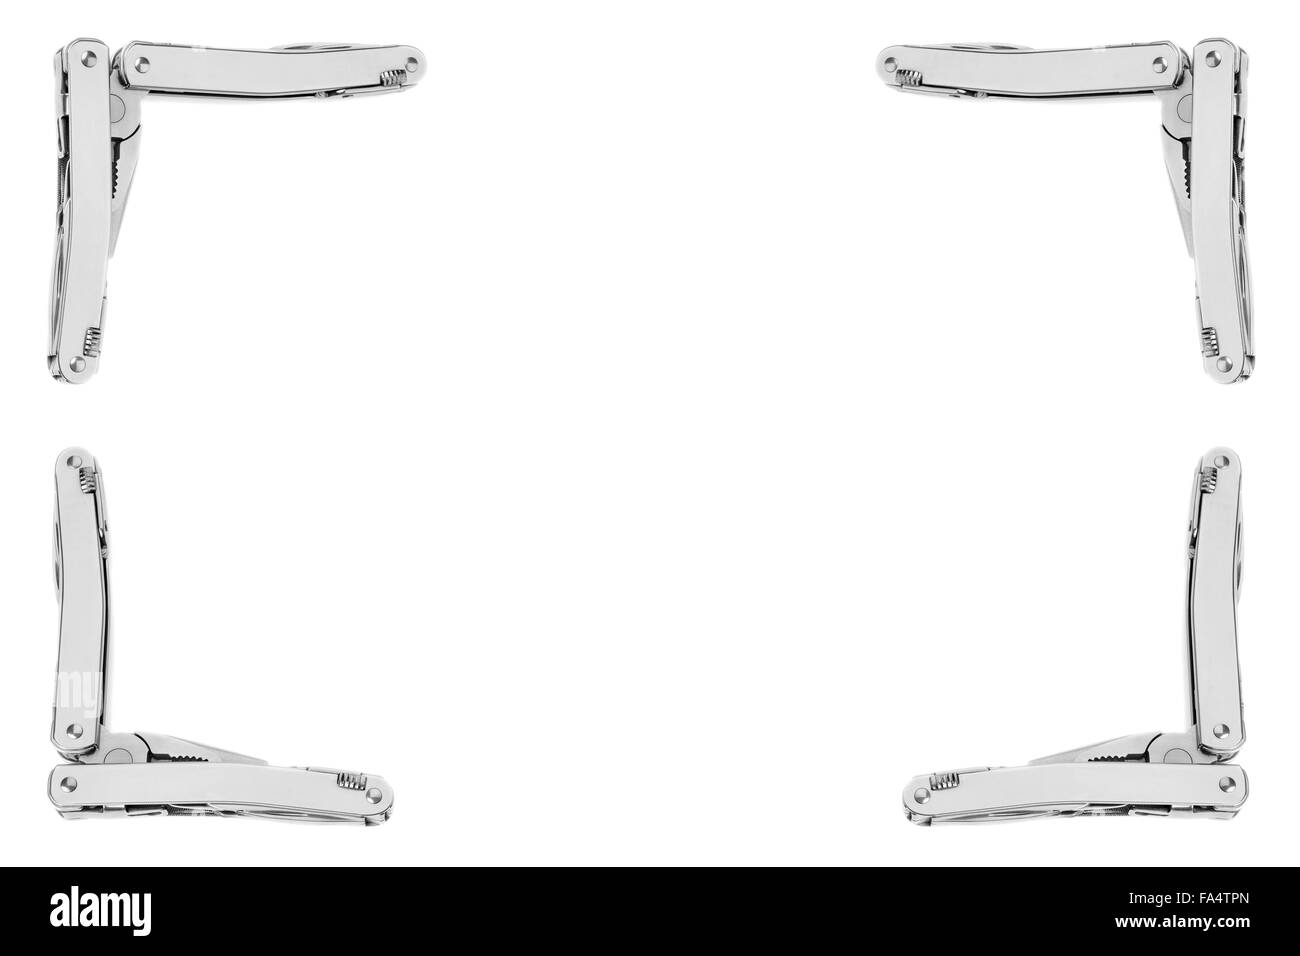 Frame of multitool army knives isolated on white - Stock Image